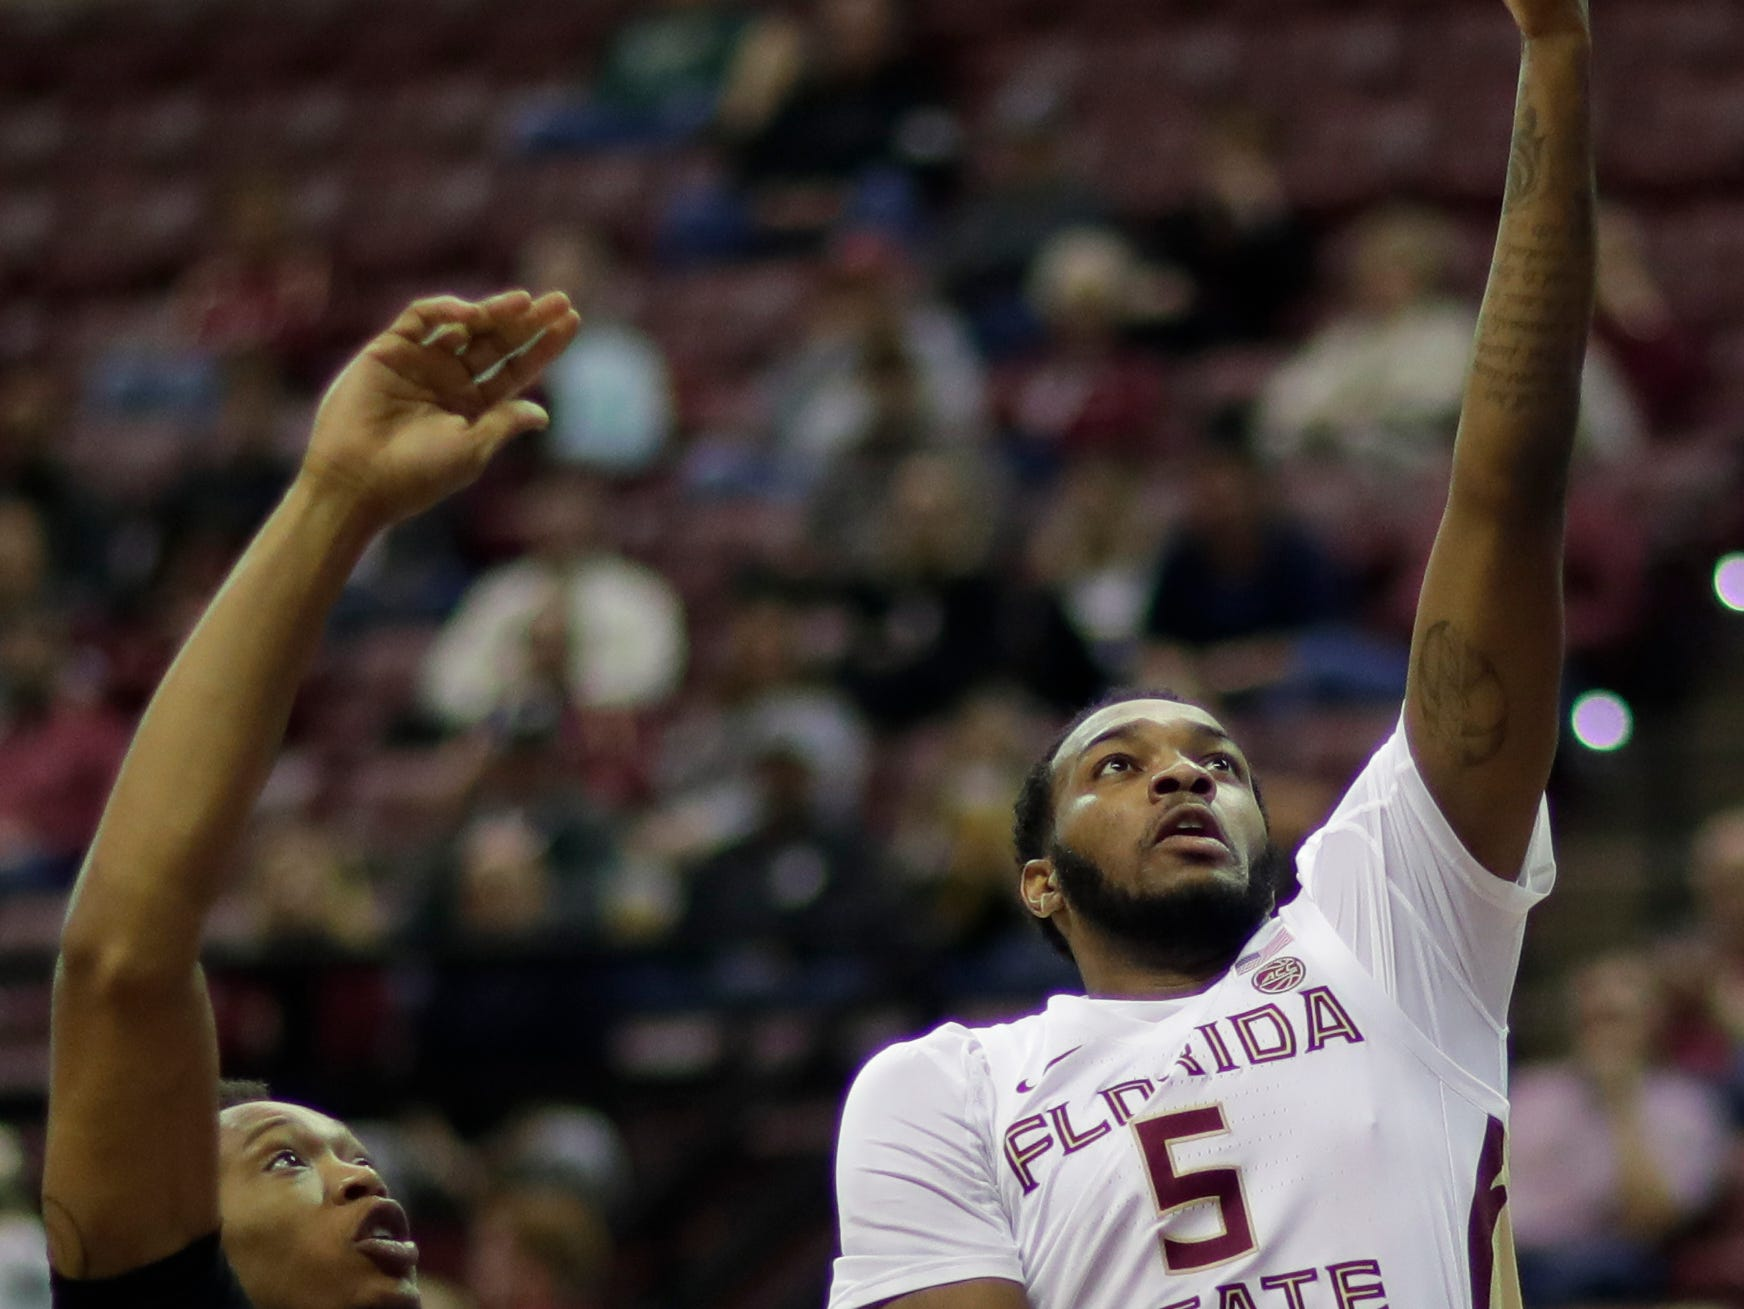 Florida State Seminoles guard PJ Savoy (5) puts up a lay up during a game between FSU and Troy University at Donald L. Tucker Civic Center Monday, Dec. 3, 2018.